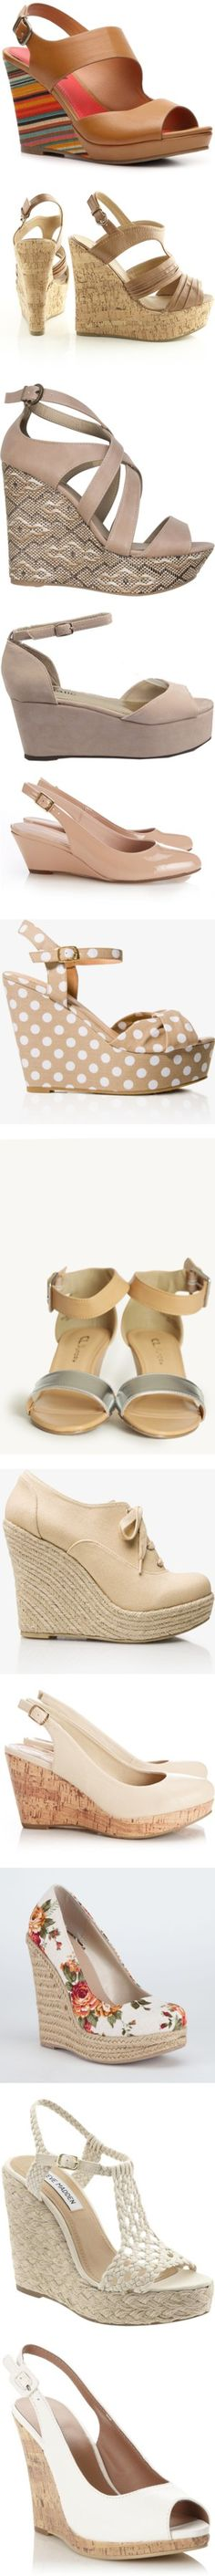 """100 great summer wedges under $50/£30"" by dana-forlano on Polyvore"